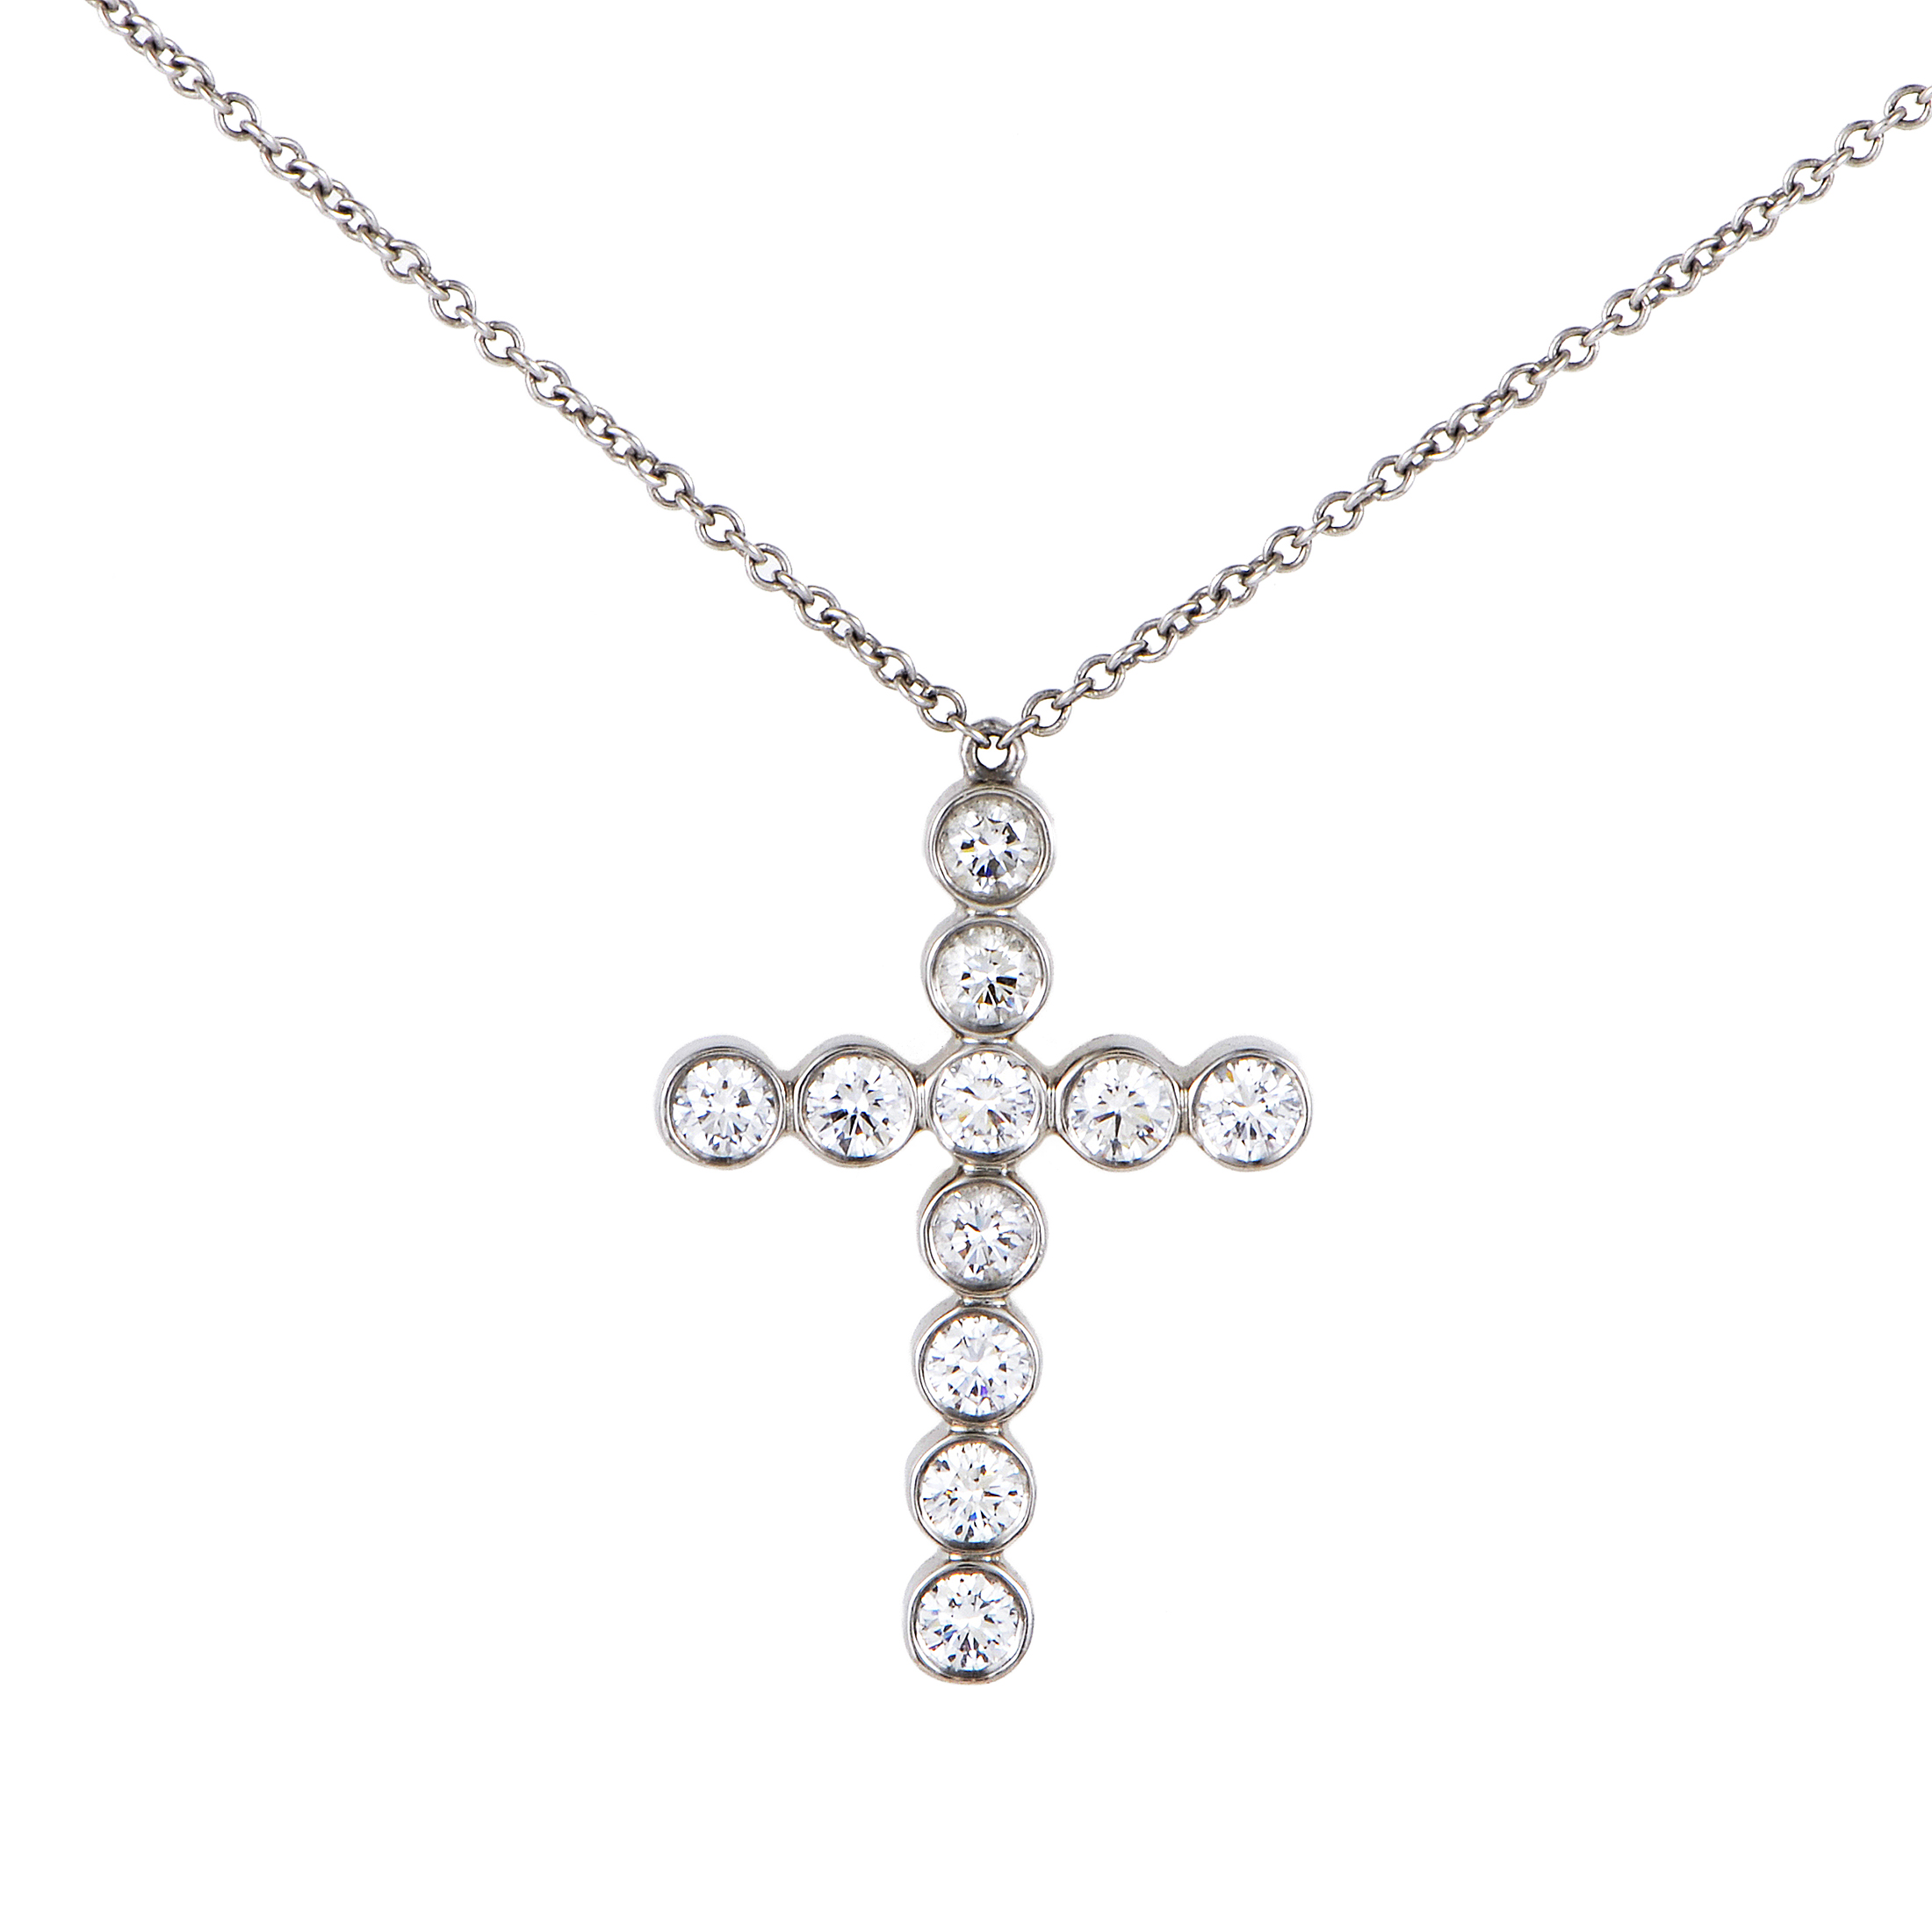 Tiffany & Co. Jazz Women's Platinum & Diamond Cross Pendant Necklace